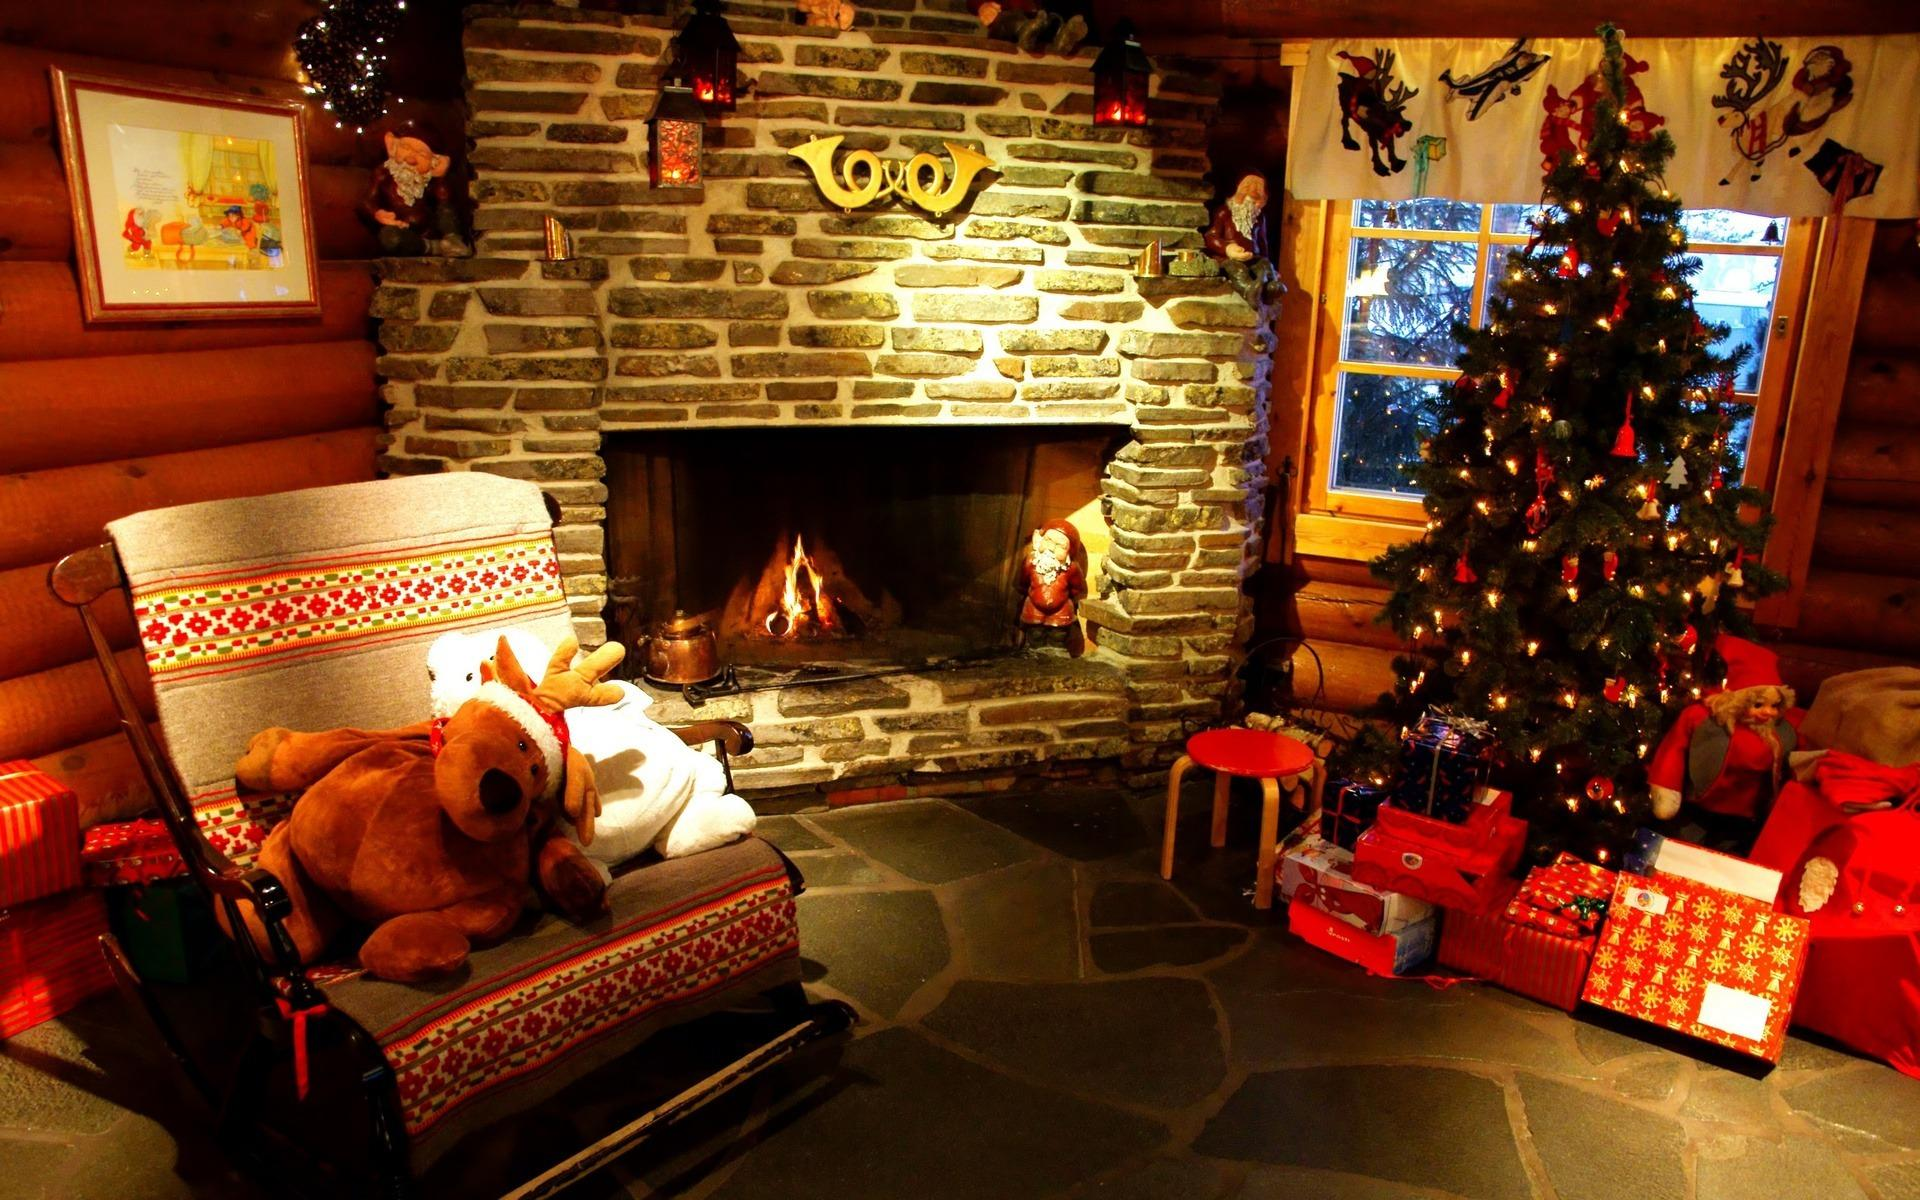 Christmas-Tree-and-Fireplace-Wallpaper-wallpaper-wp4805288